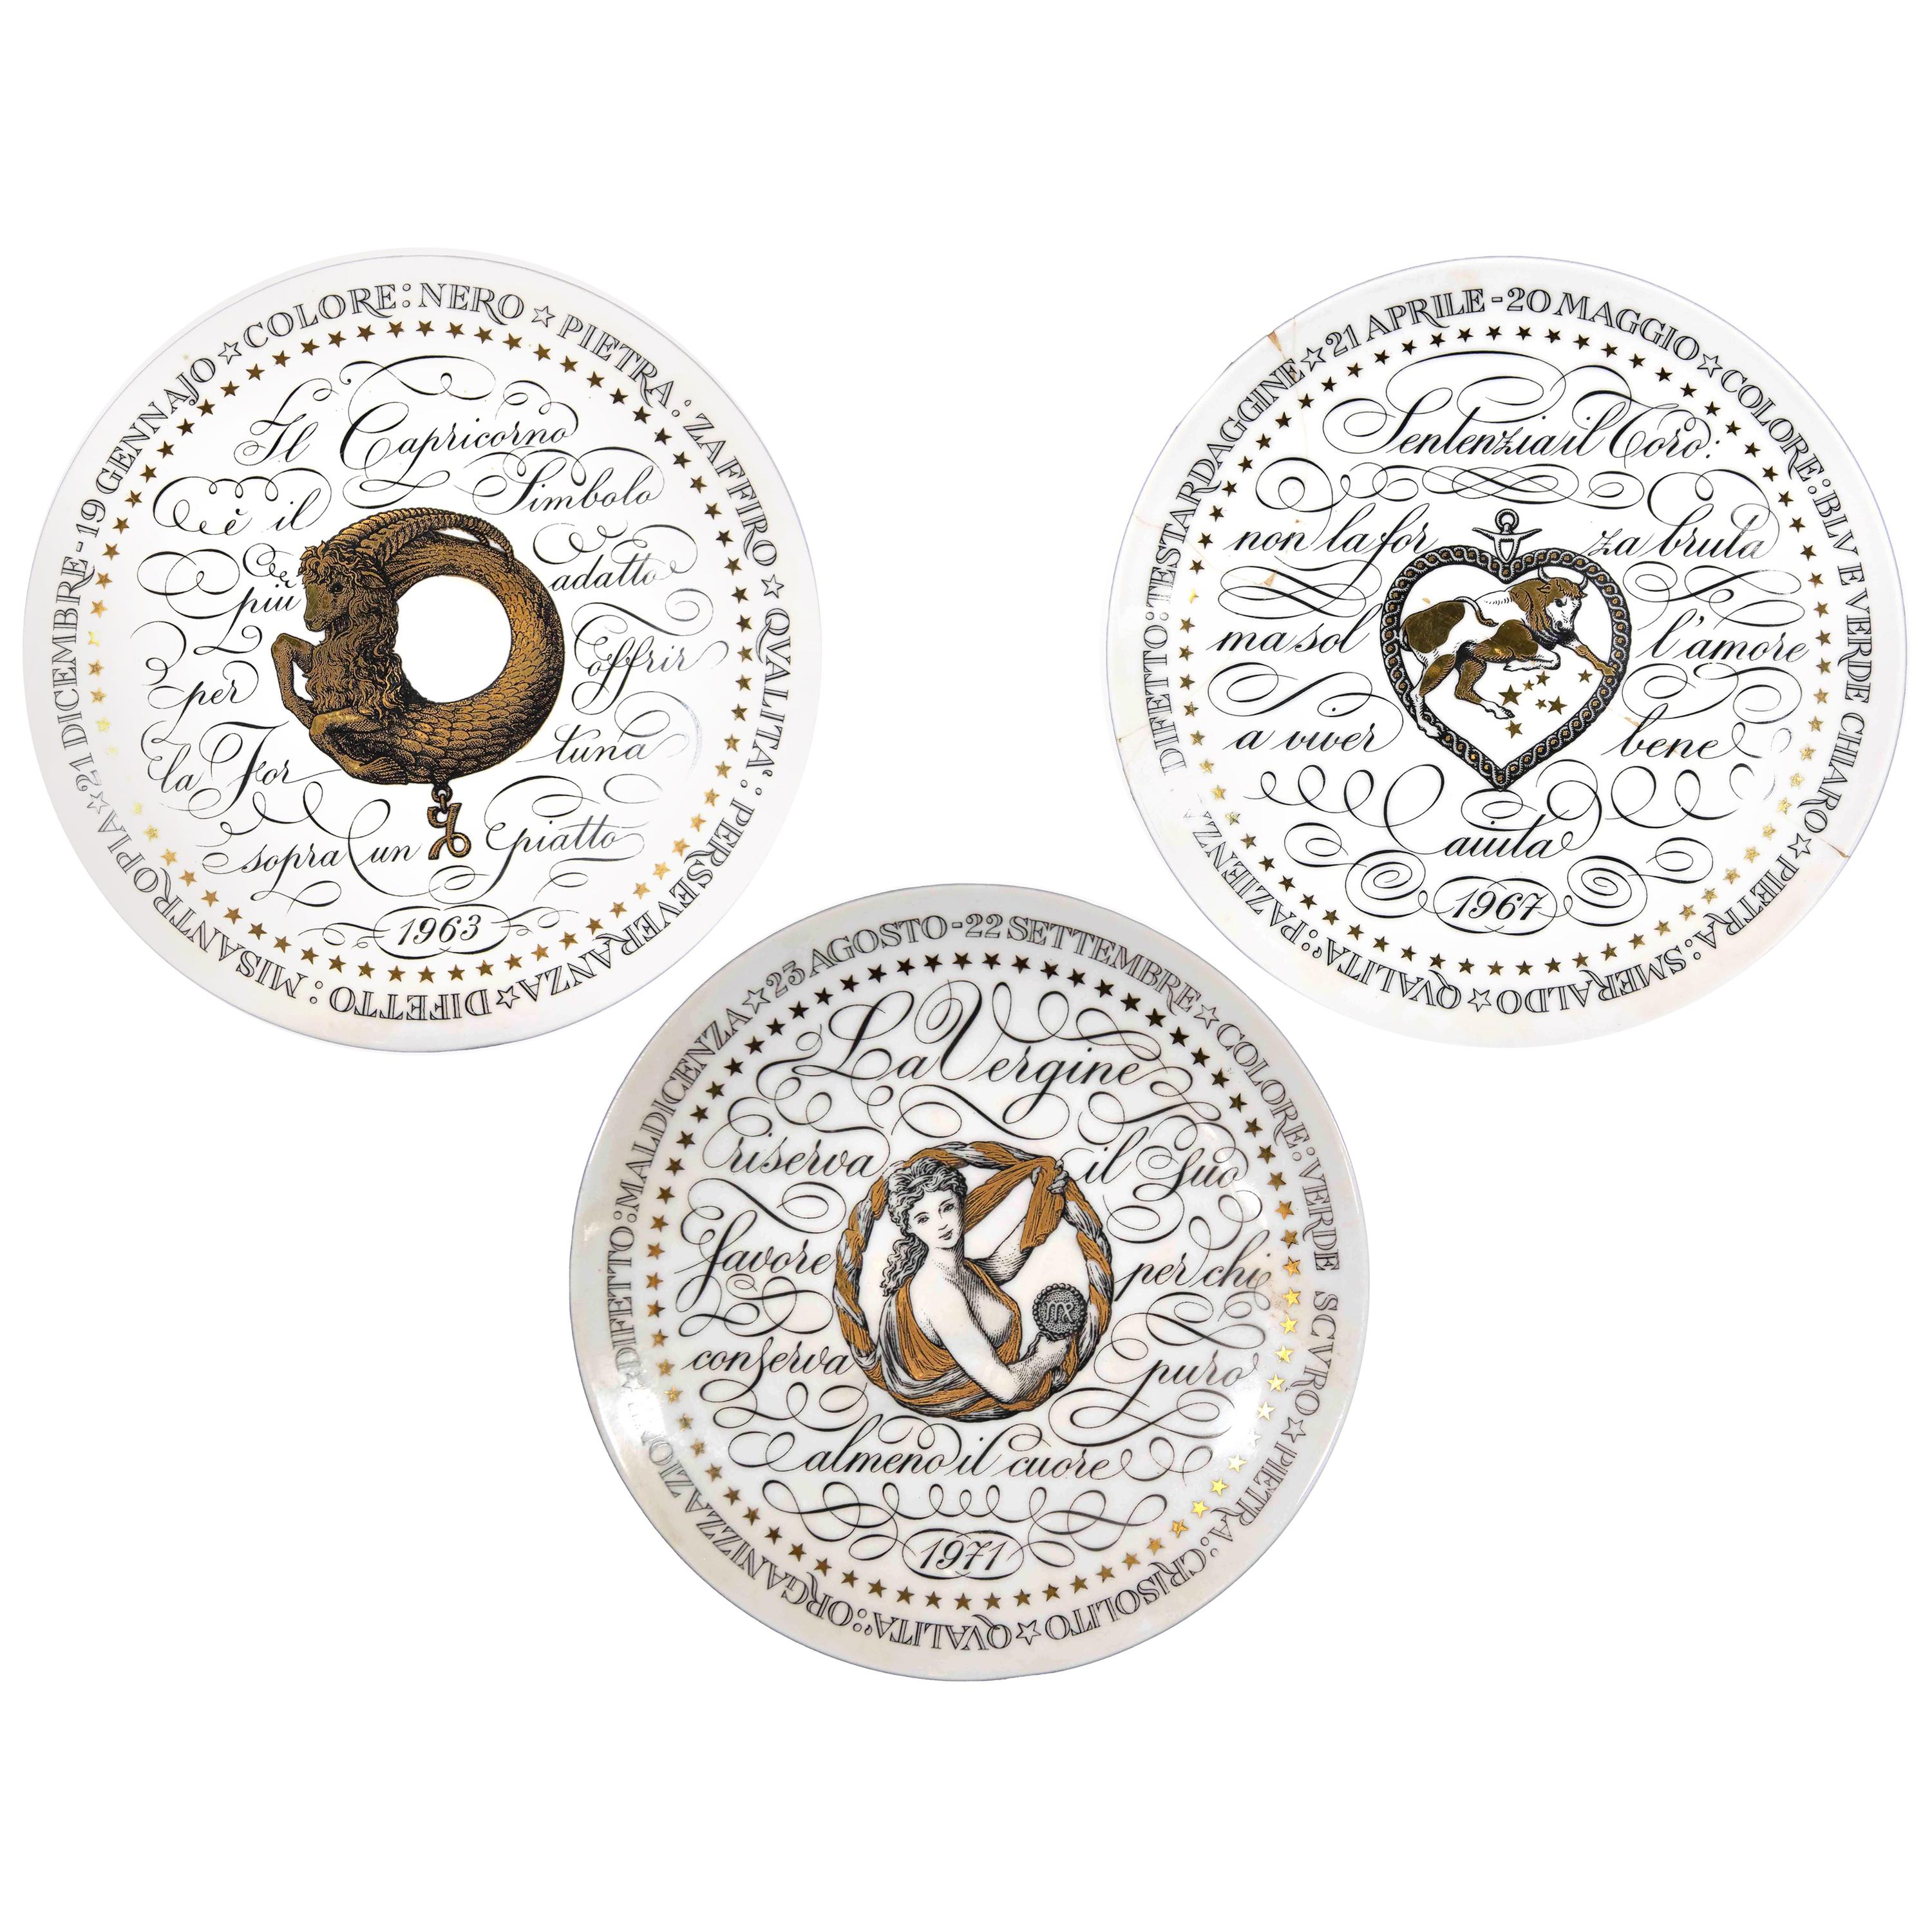 Earth Signs, Set of 3 Plates from Zodiac Plate Series by P. Fornasetti, 1965